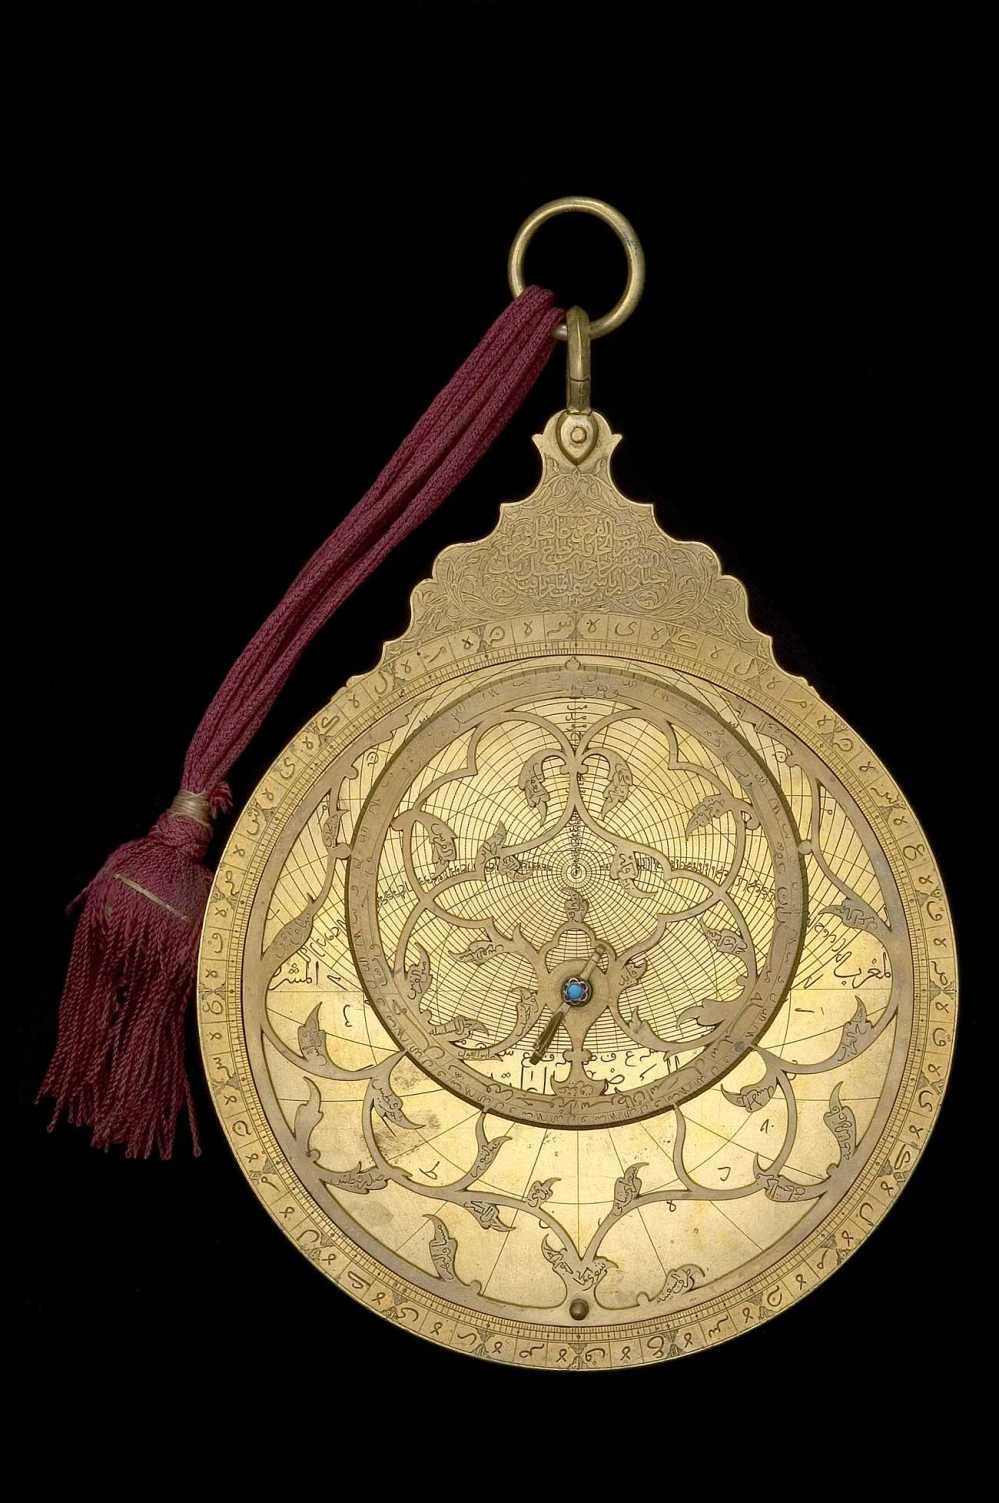 preview image for Astrolabe, by `Adb al-A'imma, Persian, 1712/13